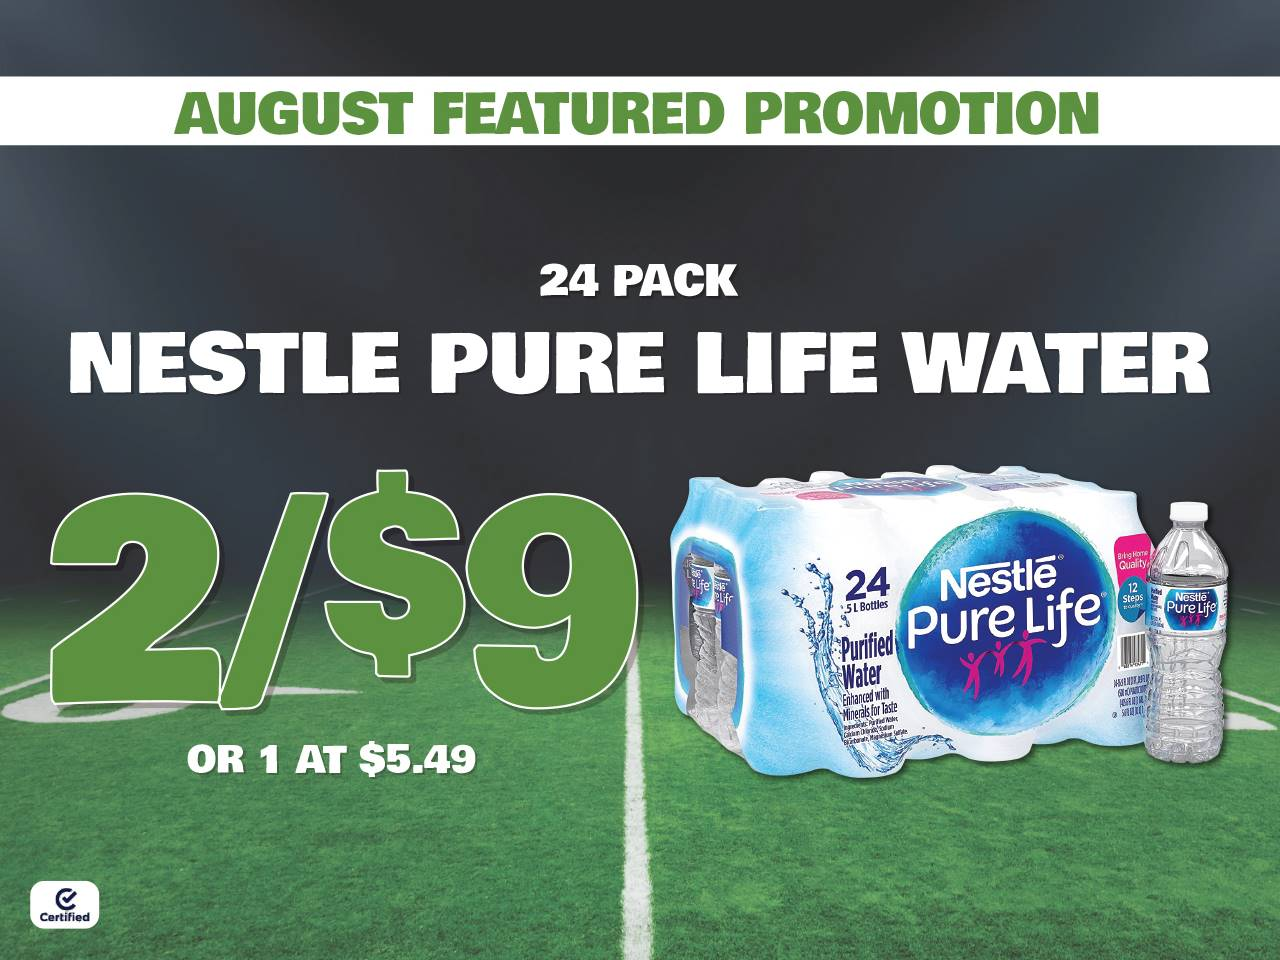 August Featured Promotion: 24 Pack Nestle Pure Life Water 2 for $9 or 1 at $5.49